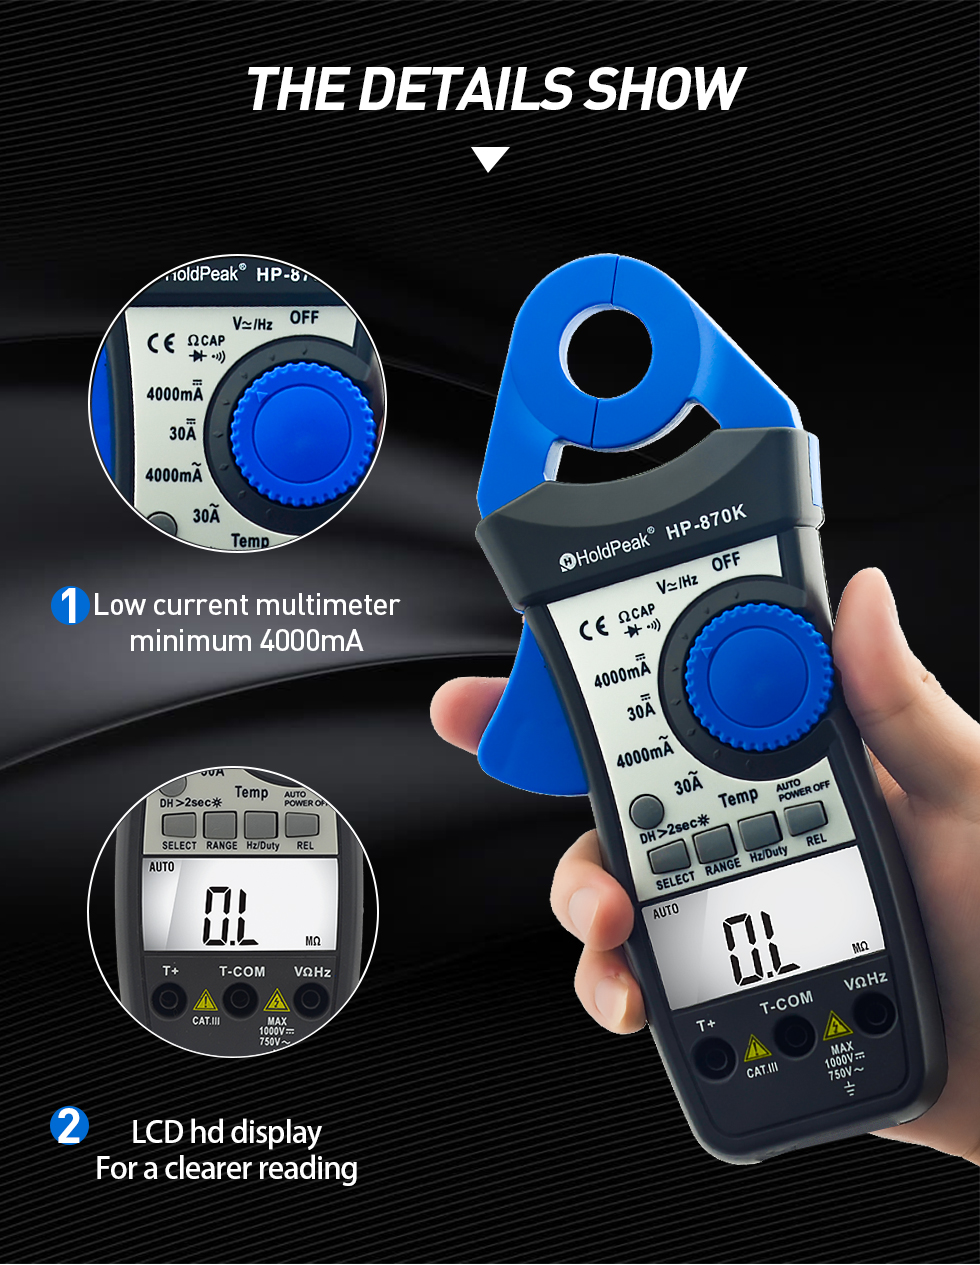 Holdpeak Digital Clamp Meter Hp 870k 4000 Auto Range Dc Ac Multimeter True Rms Frequency Backlight Diode Test Date Hold Function Clamp Meters Aliexpress